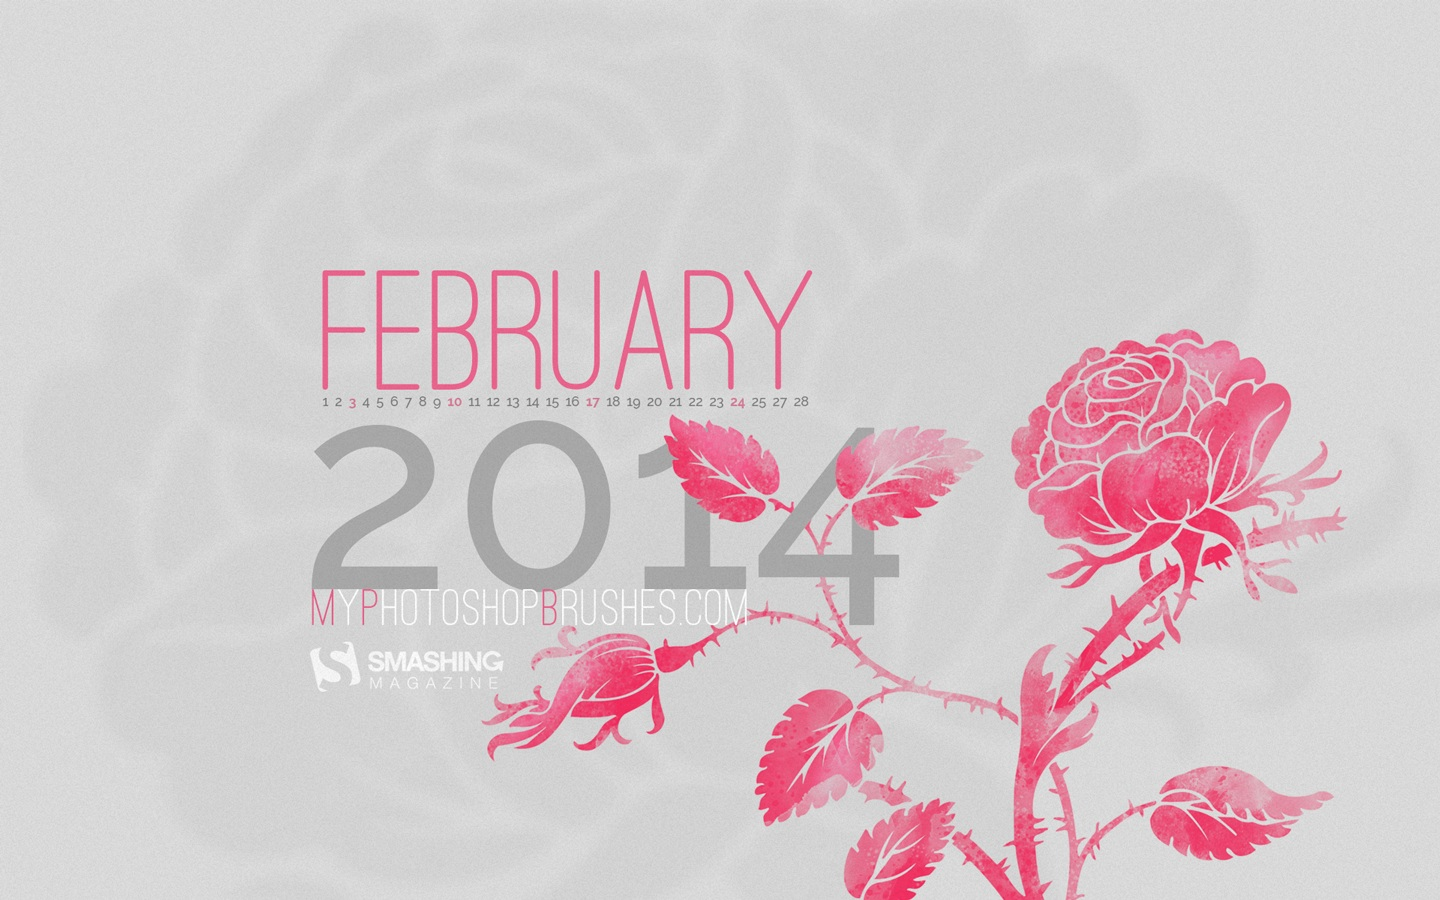 In January Calendar Wallpaper 49879